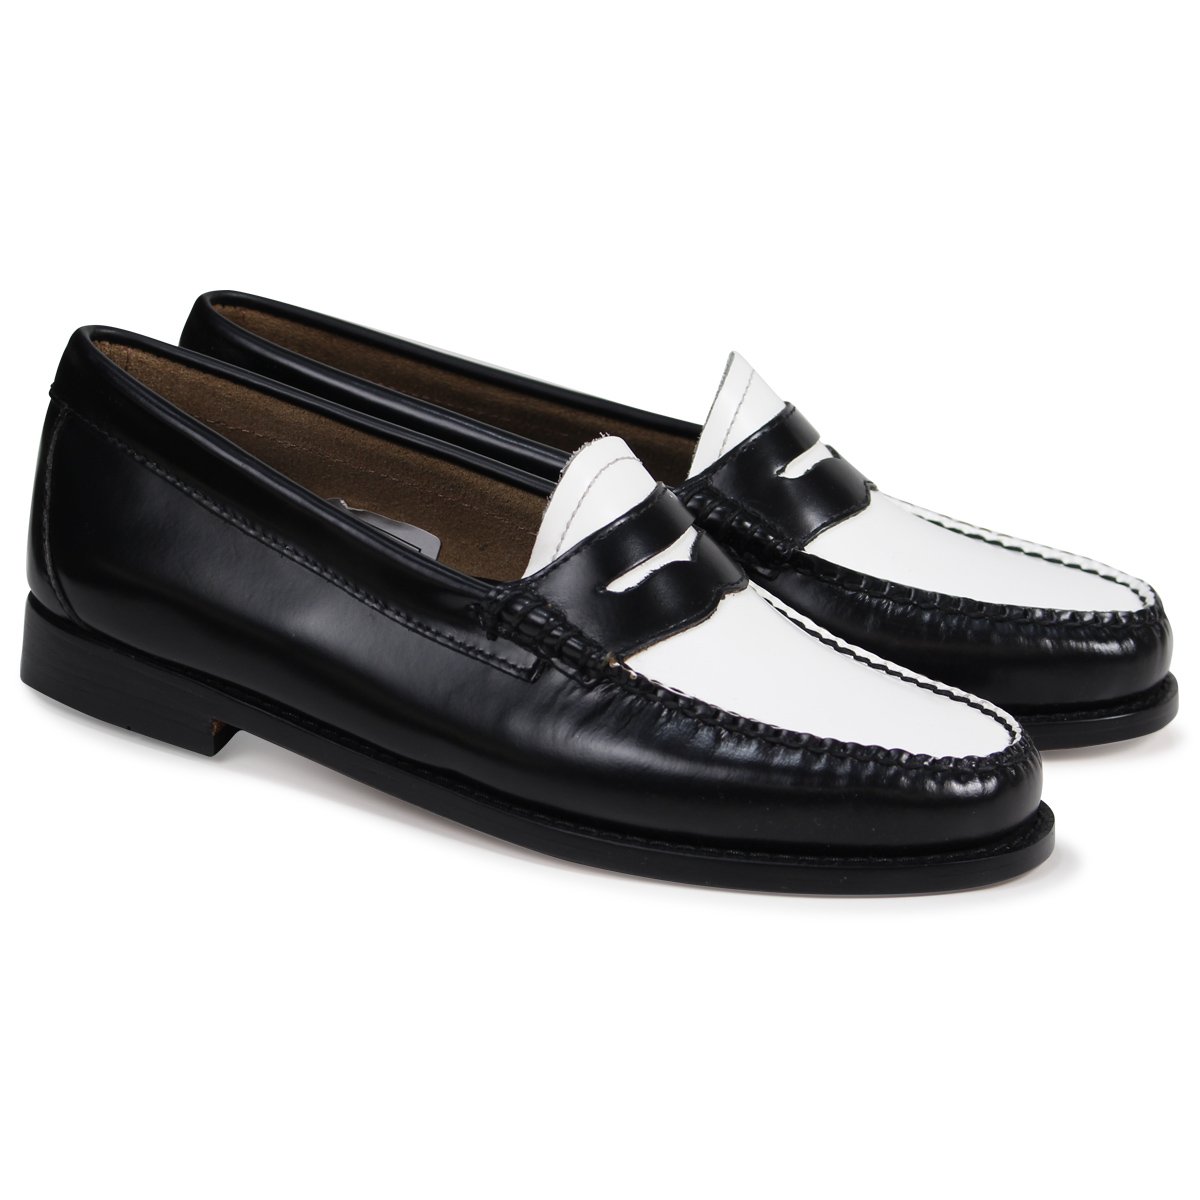 f71e4144583 G.H. BASS WEEJUNS PENNY LOAFERS ローファージーエイチバスレディース BA41010-001 black  load  planned Shinnyu load in reservation product 3 1 containing